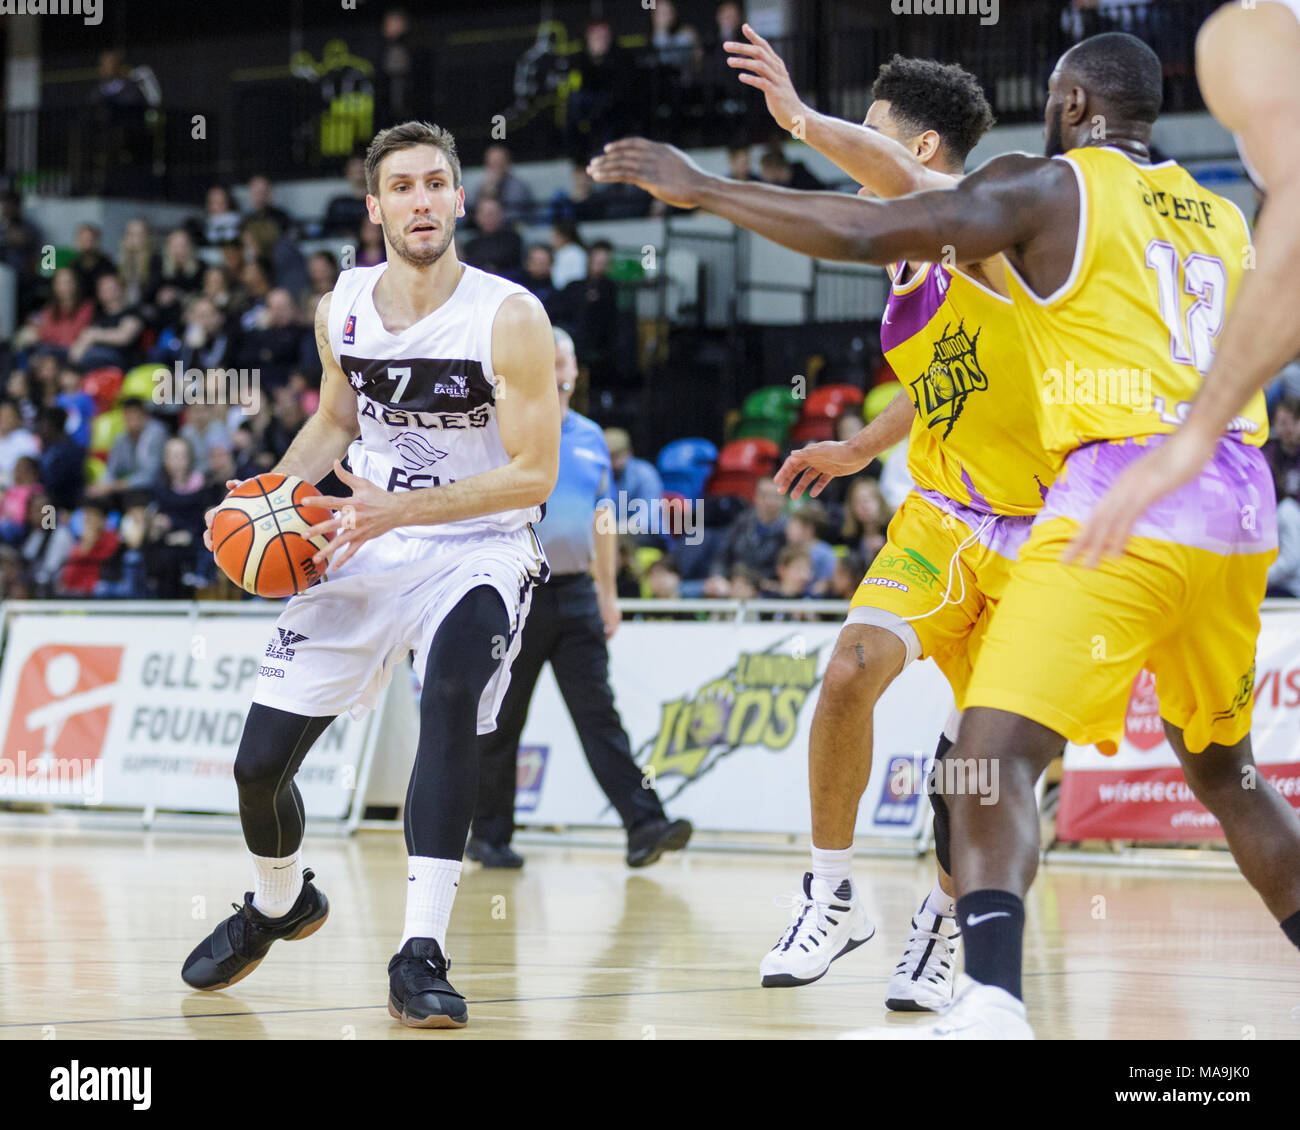 Copper Box Arena, London, 30th Mar 2018. Eagles Jure Gunjina (7) on the attack.Tensions run high in the British Basketball League (BBL) game between home team London Lions and the guests Newcastle Eagles. London Lions win 96-84. Credit: Imageplotter News and Sports/Alamy Live News - Stock Image